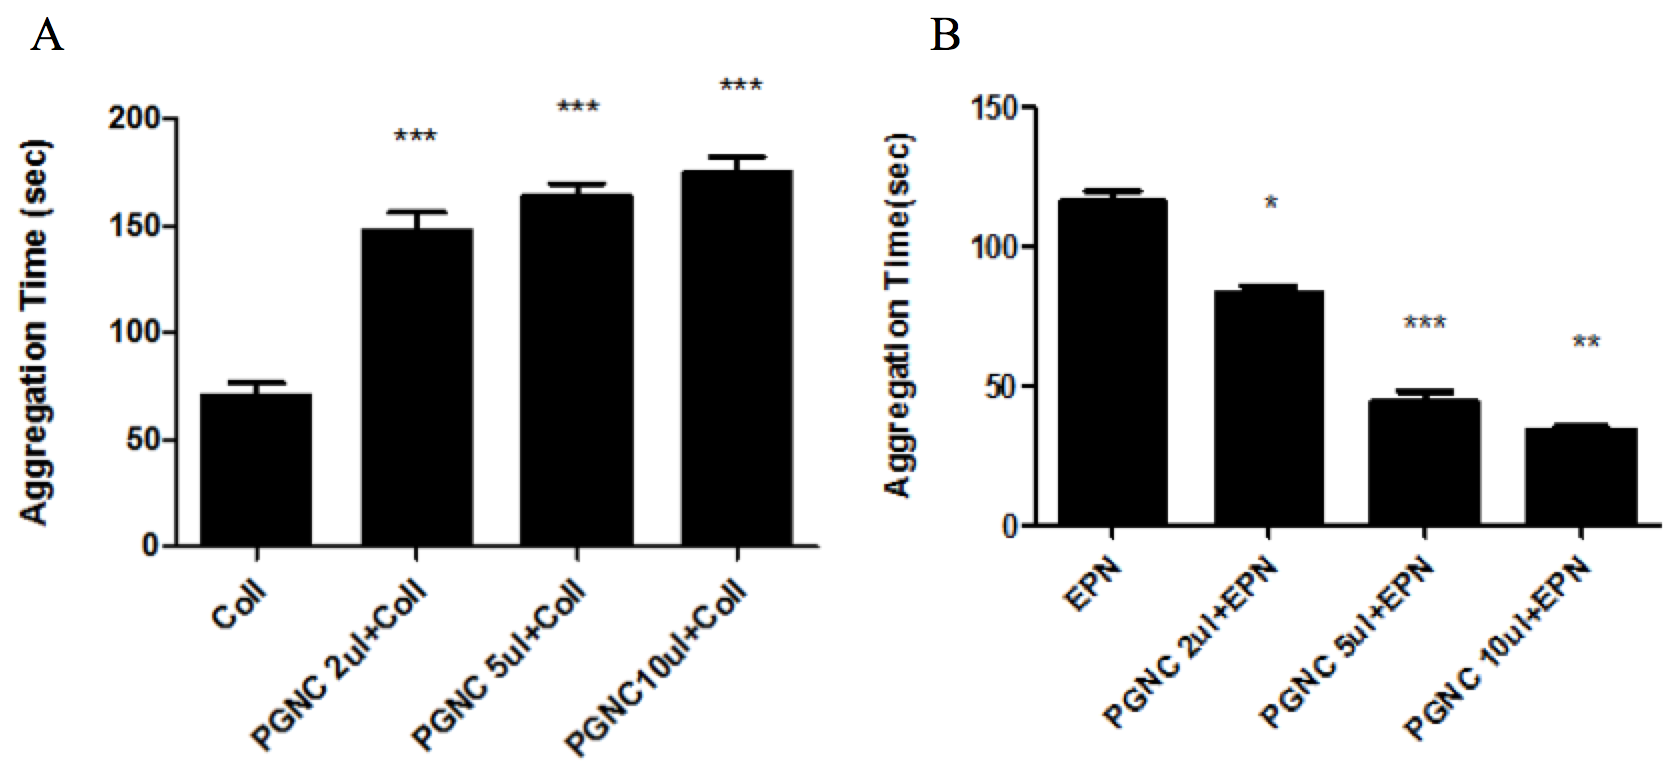 Figure 2 P. gerardiana has opposite effect on epinephrine and Collagen activated Platelet aggregation: platelet aggregation in vitro